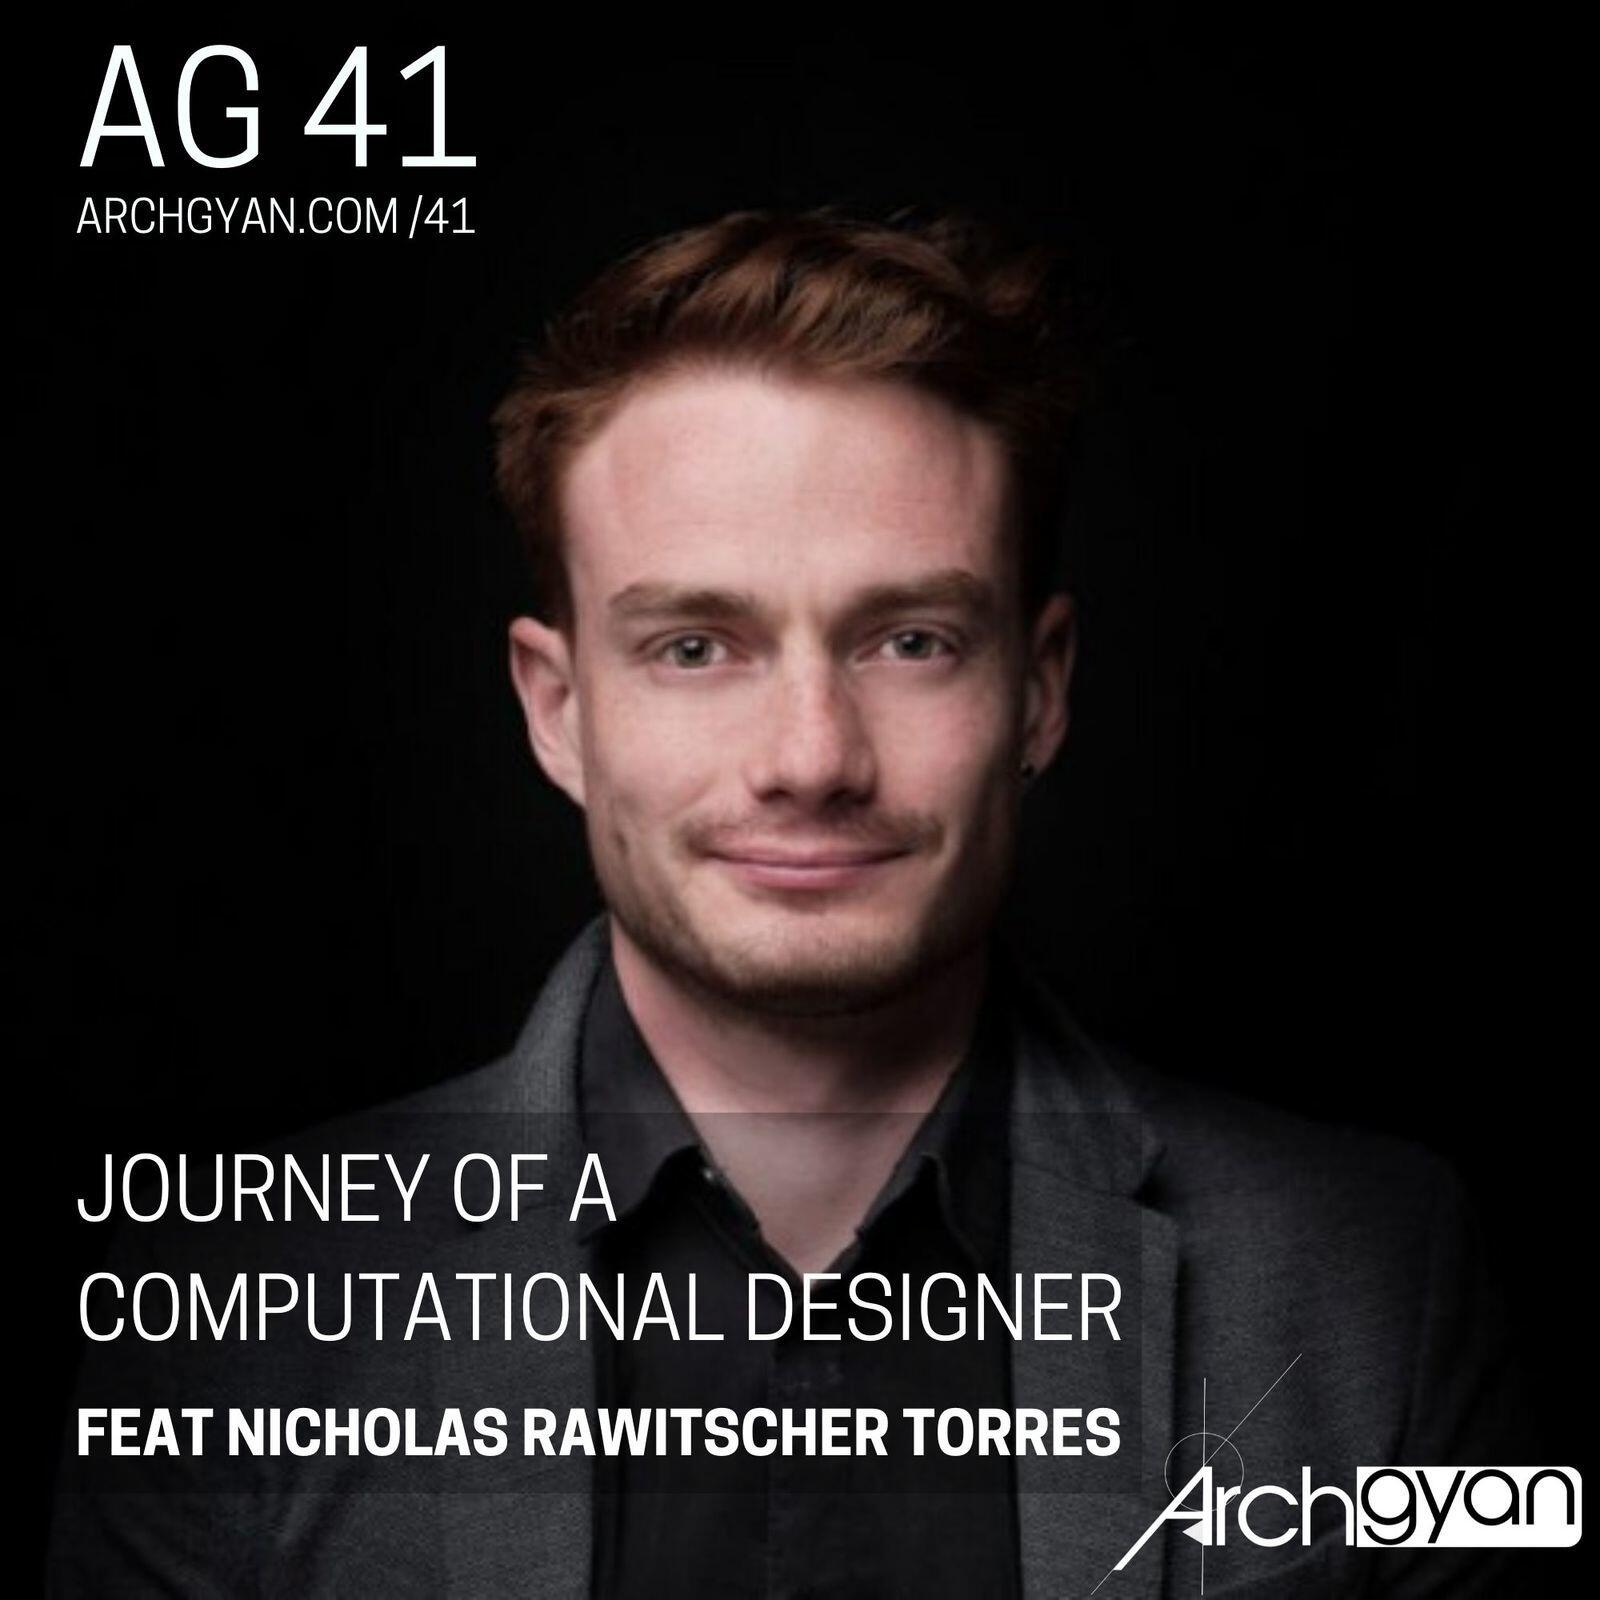 Journey of a Computational Designer with Nicholas Rawitscher Torres | AG 41